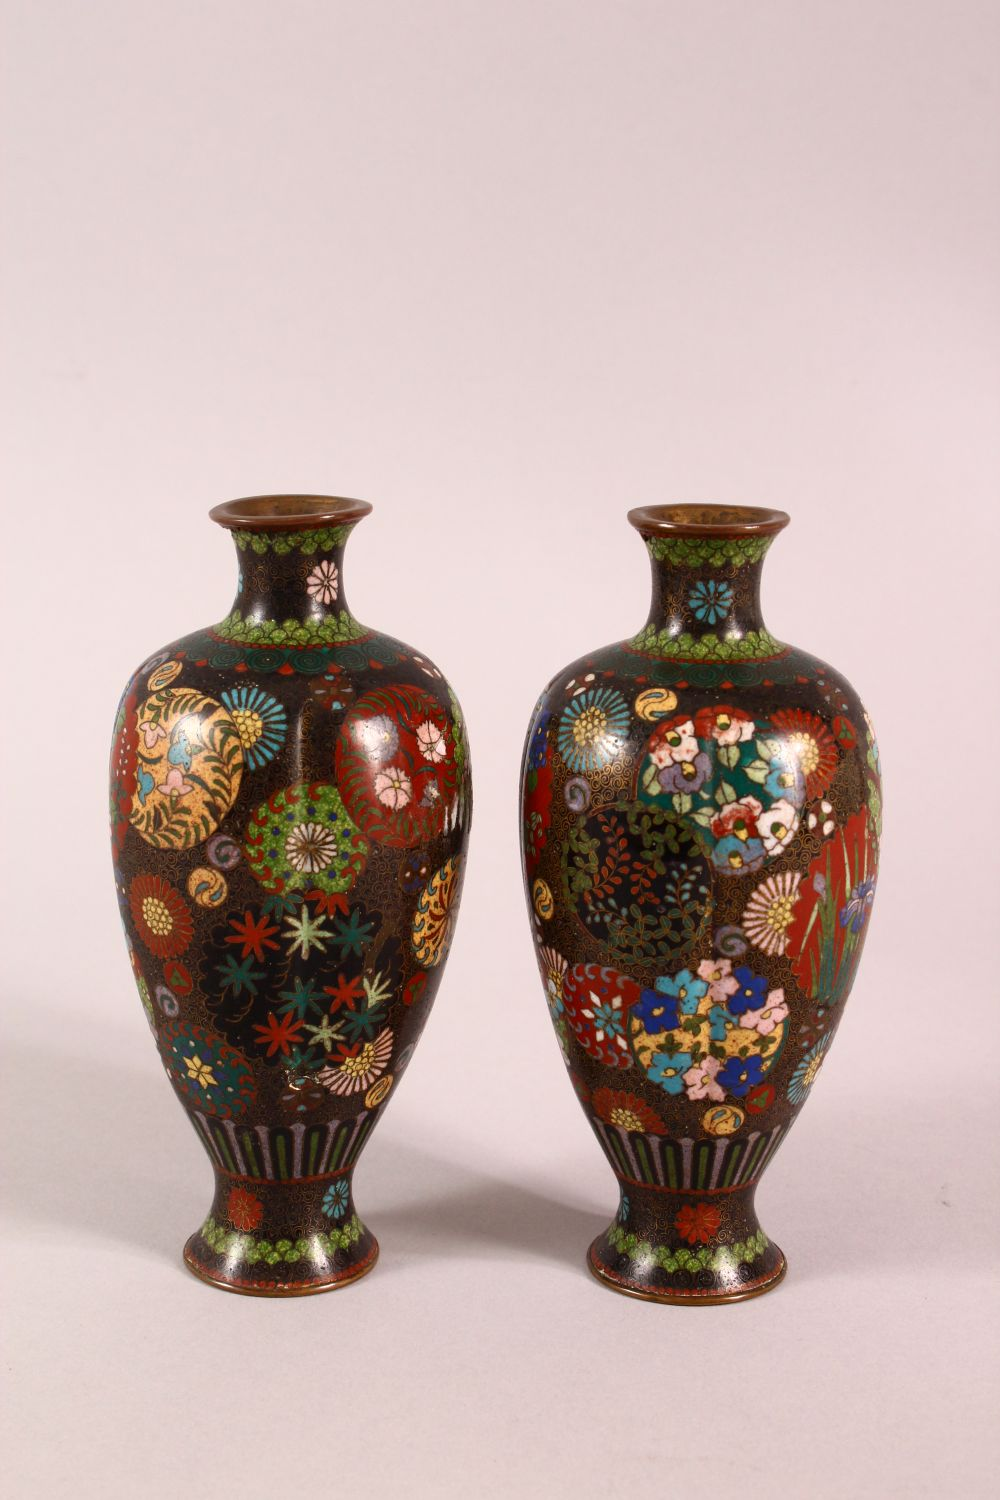 A PAIR OF SMALL CLOISONNE VASES OF RIBBED BALUSTER FORM, decorated with roundels of flowers, 15cm - Image 2 of 6